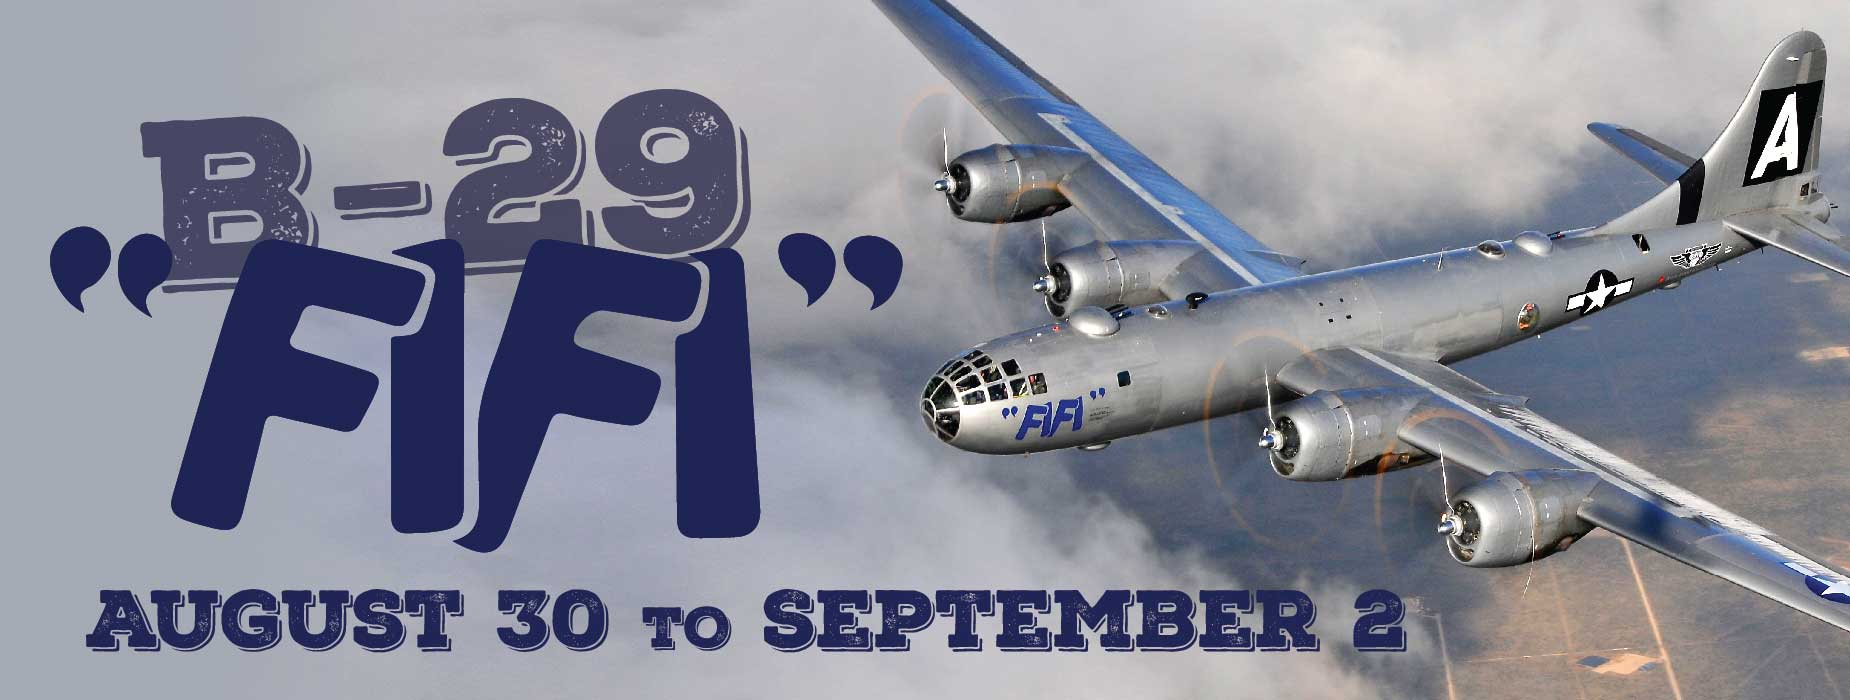 "Banner Image for the B-29 ""FIFI"" Visit event"